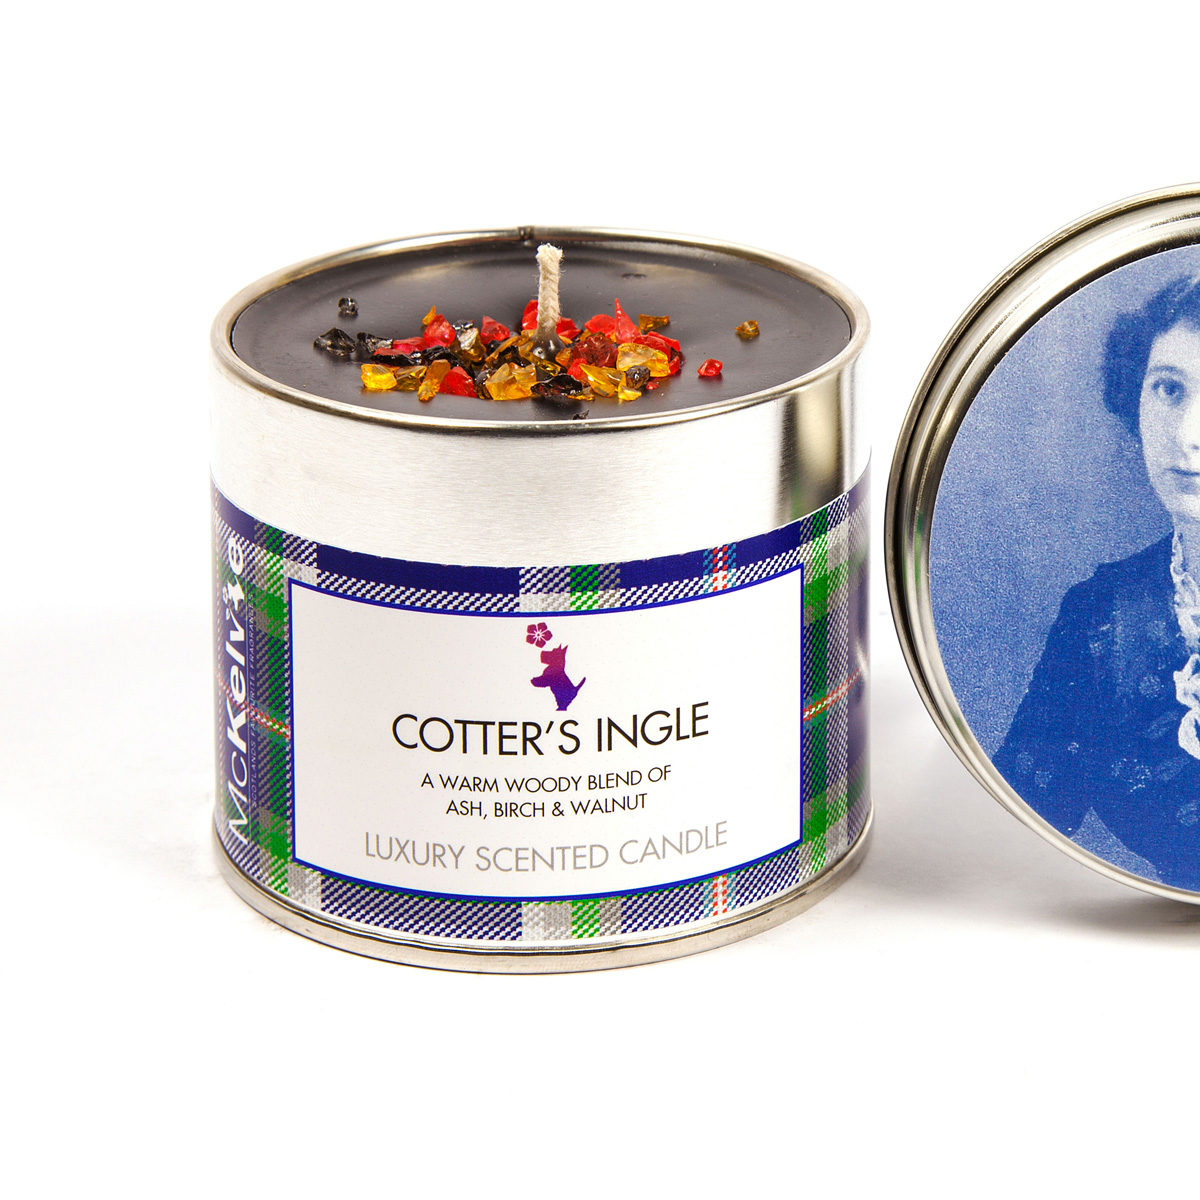 Cotter's Ingle Scented Candle Tin